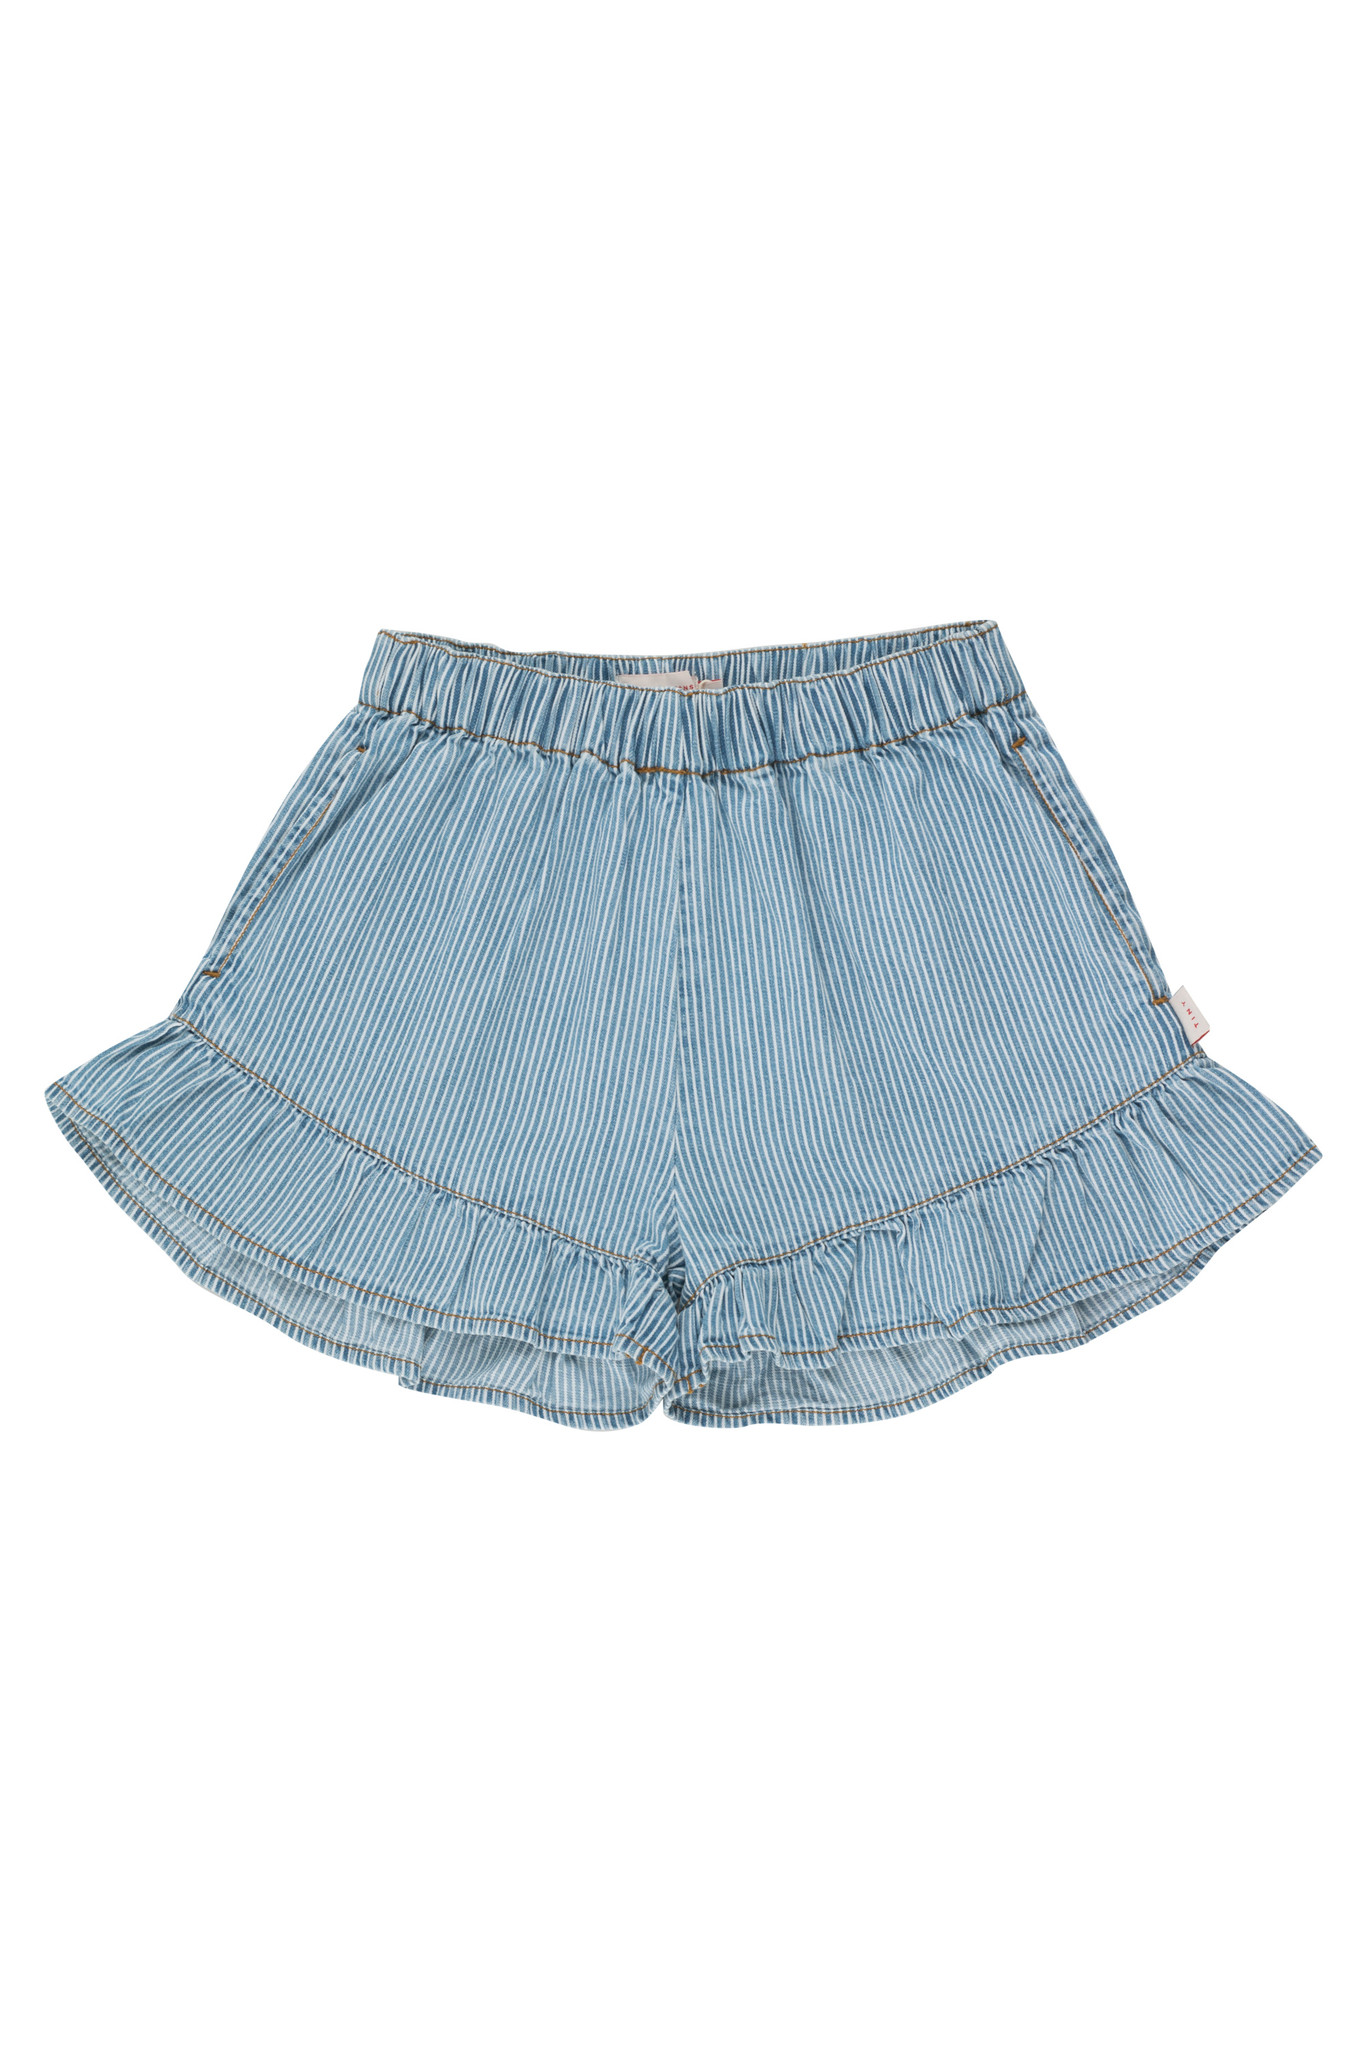 Striped denim frills short - Stripes Denim-1